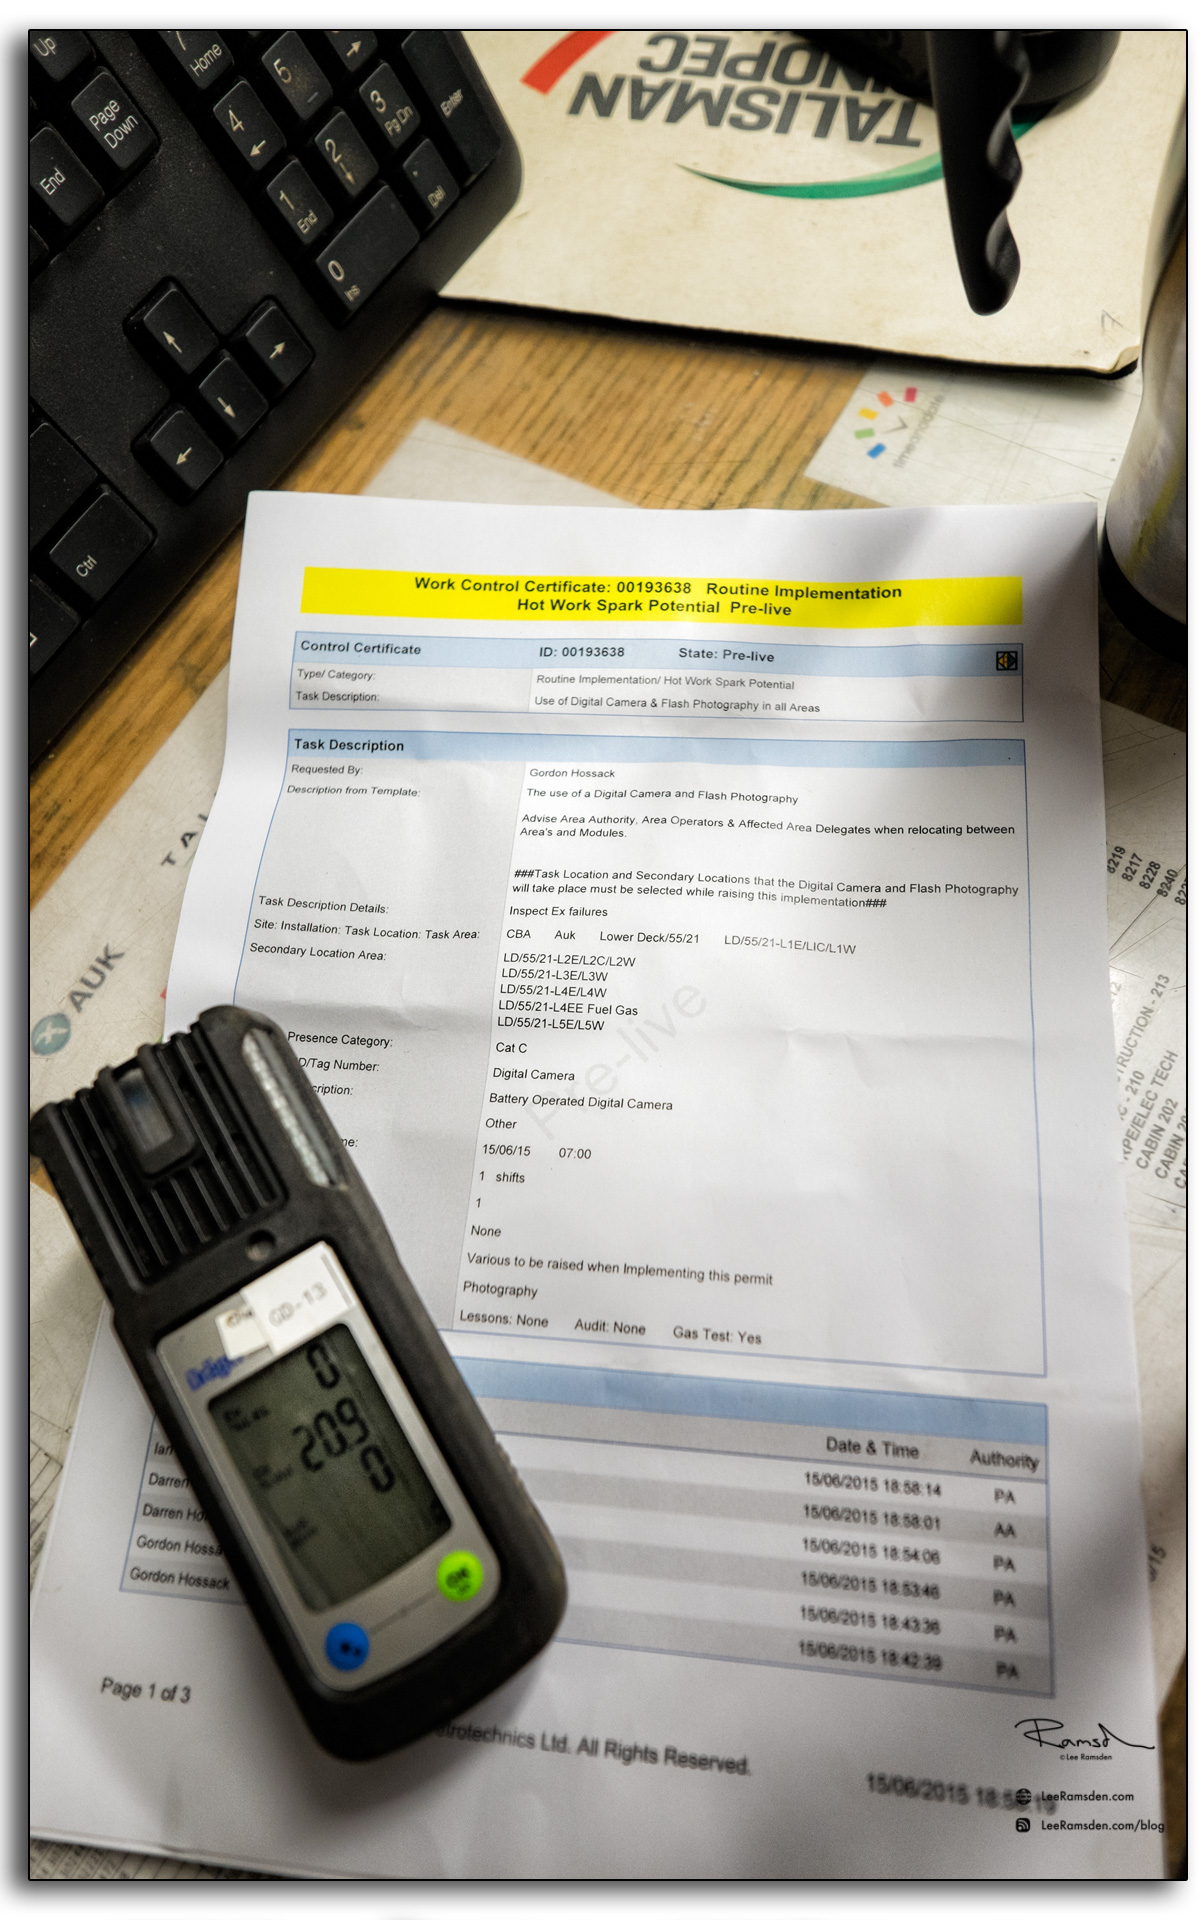 17 Hot Work Spark potential permit to work ISSOW Draggar gas monitor meter